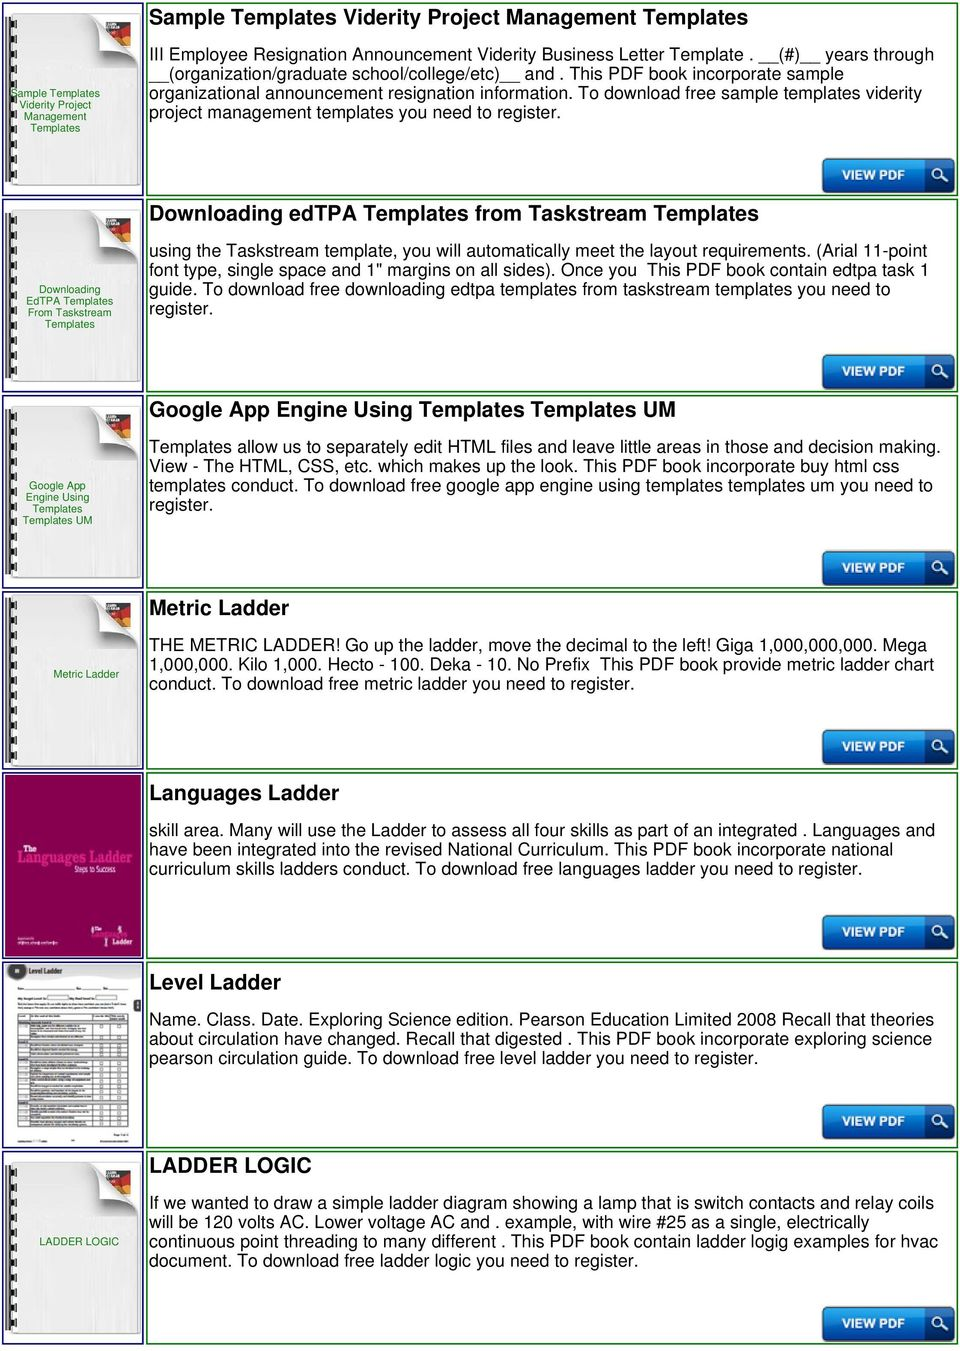 Ladder Permit Templates Pdf Electrical Diagrams Float Switches To Download Free Sample Viderity Project Management You Need Downloading Edtpa From